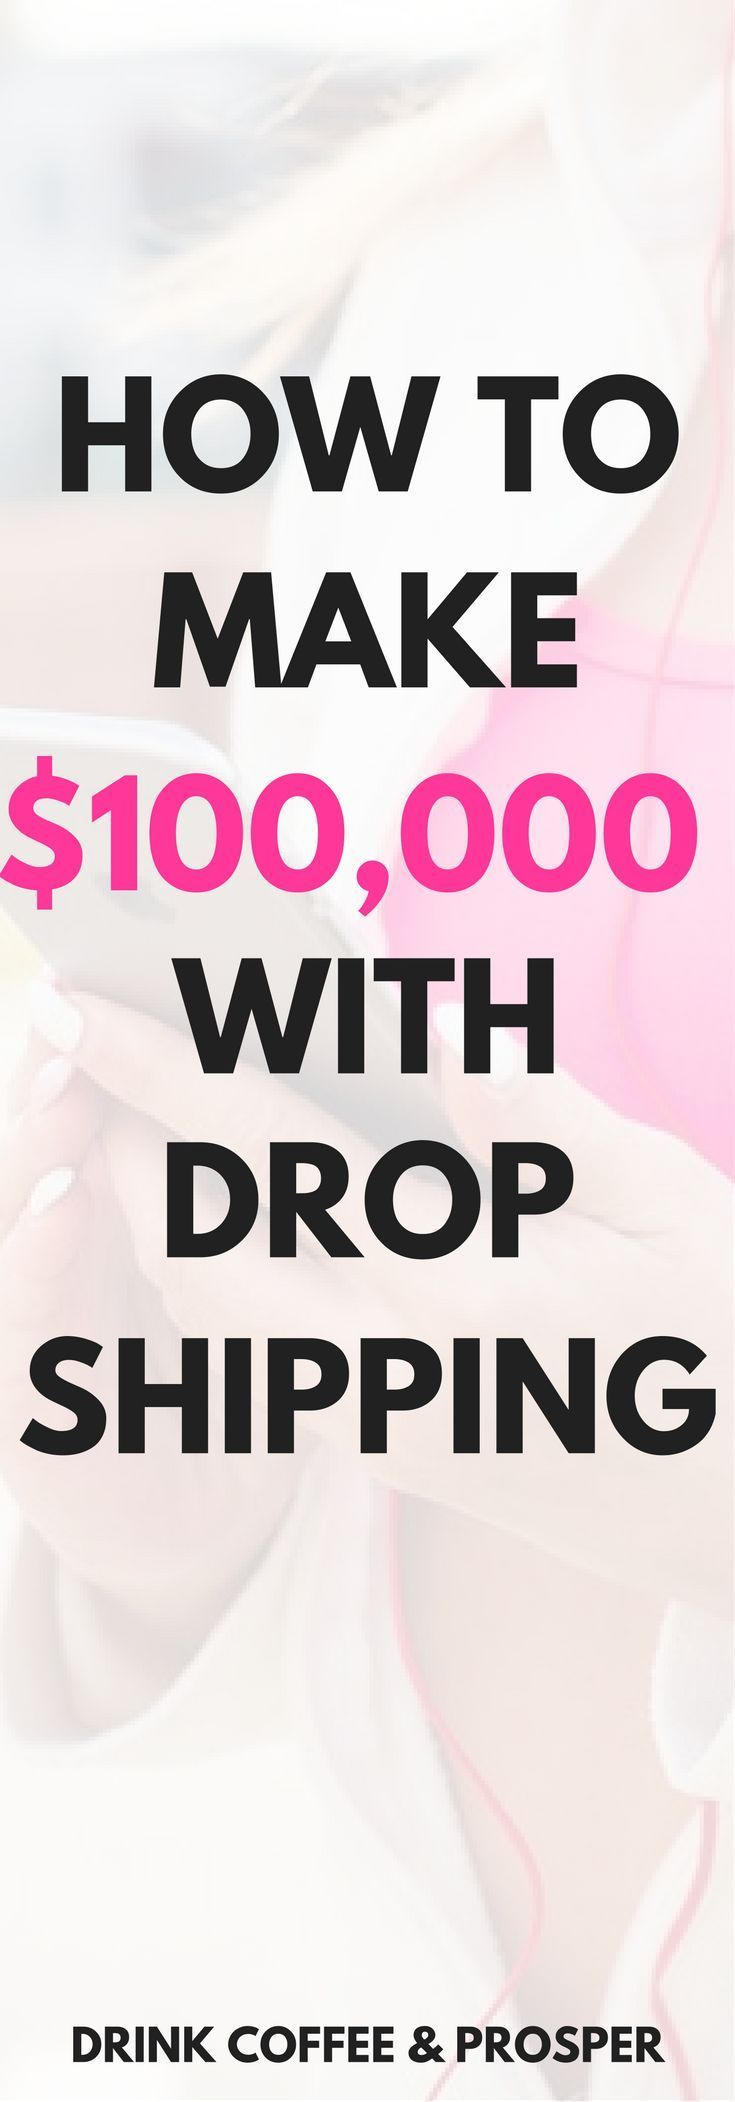 How you can make $100,000 with dropshipping | make money dropshipping | start a dropship store | start a dropshipping business | learn how to dropship | ebay dropshipping | amazon dropshipping | dropshipping from home | income dropshipping | dropshipping book | dropshipping course| drinkcoffeeandprosper.com